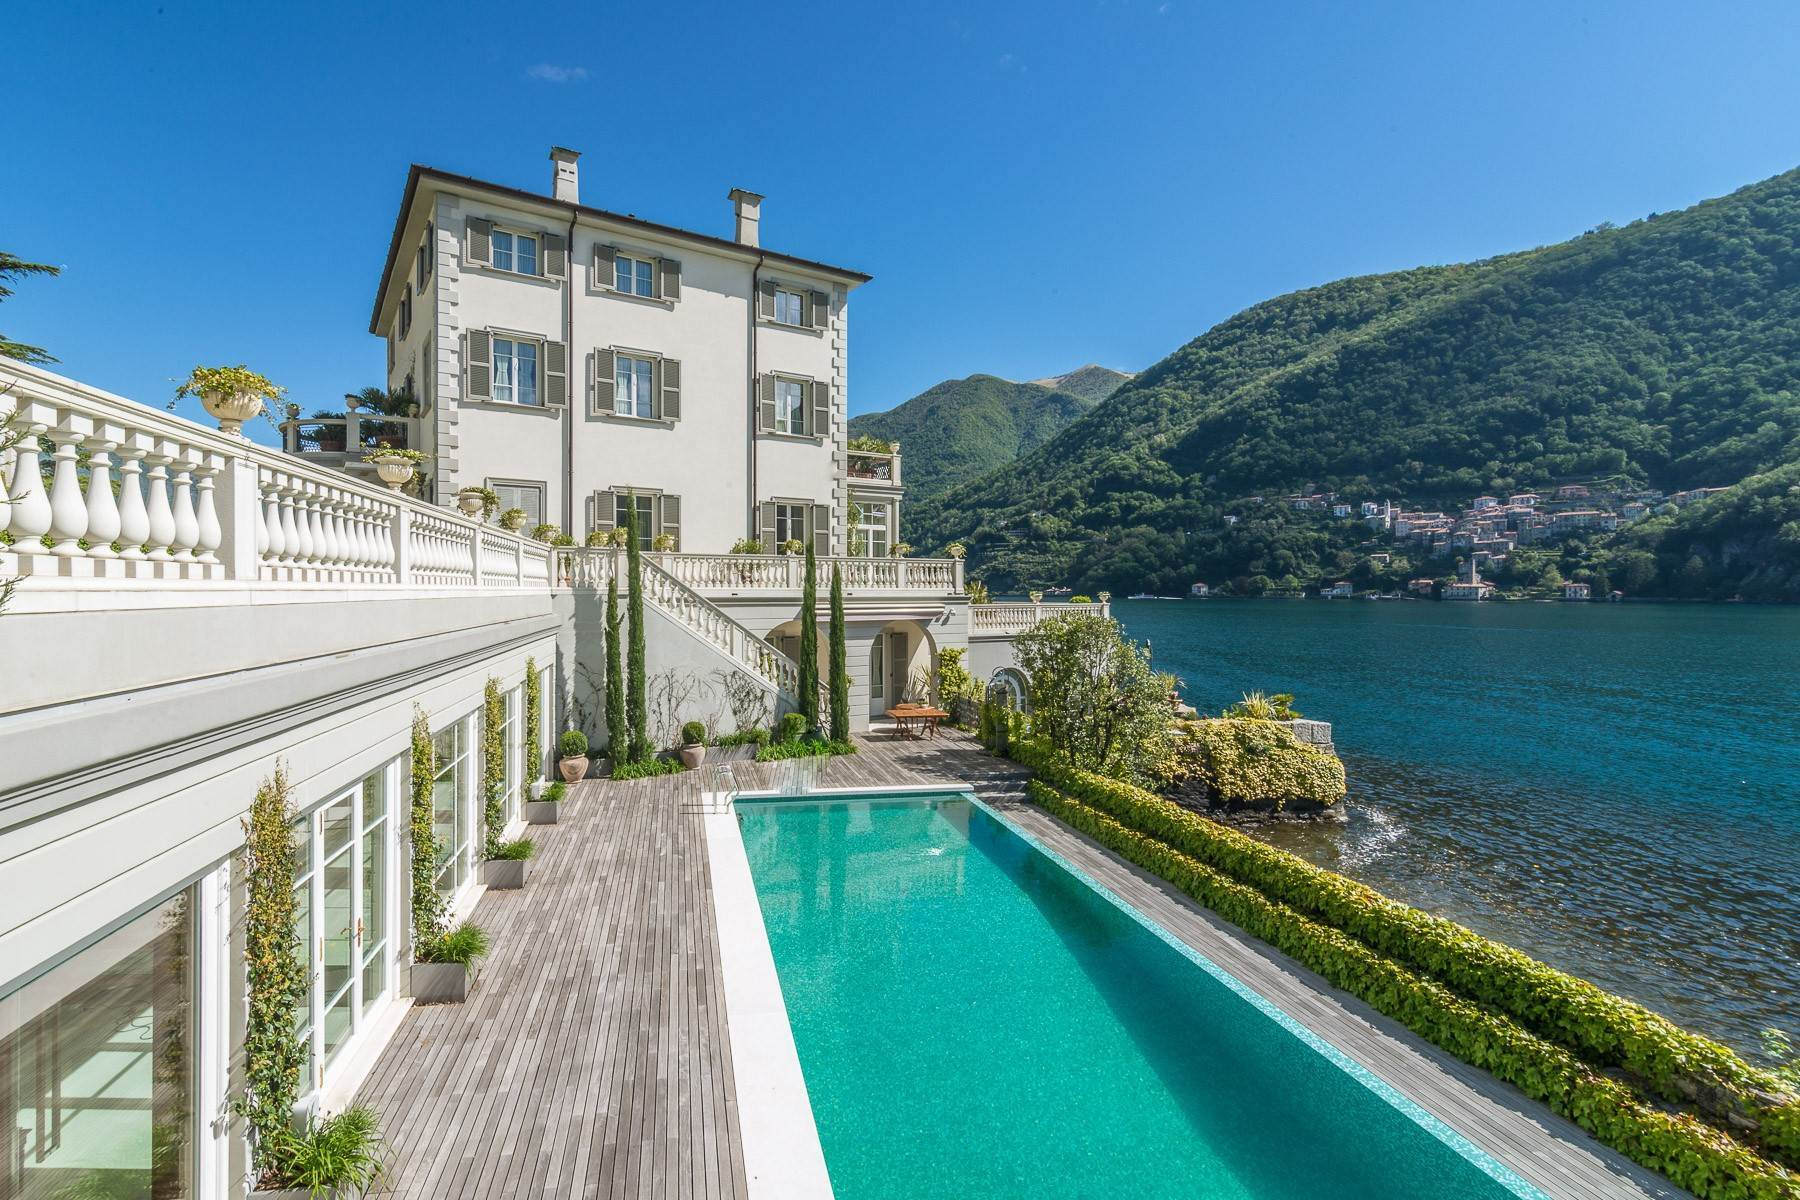 15. Other Residential Homes at Laglio, Como, Italy